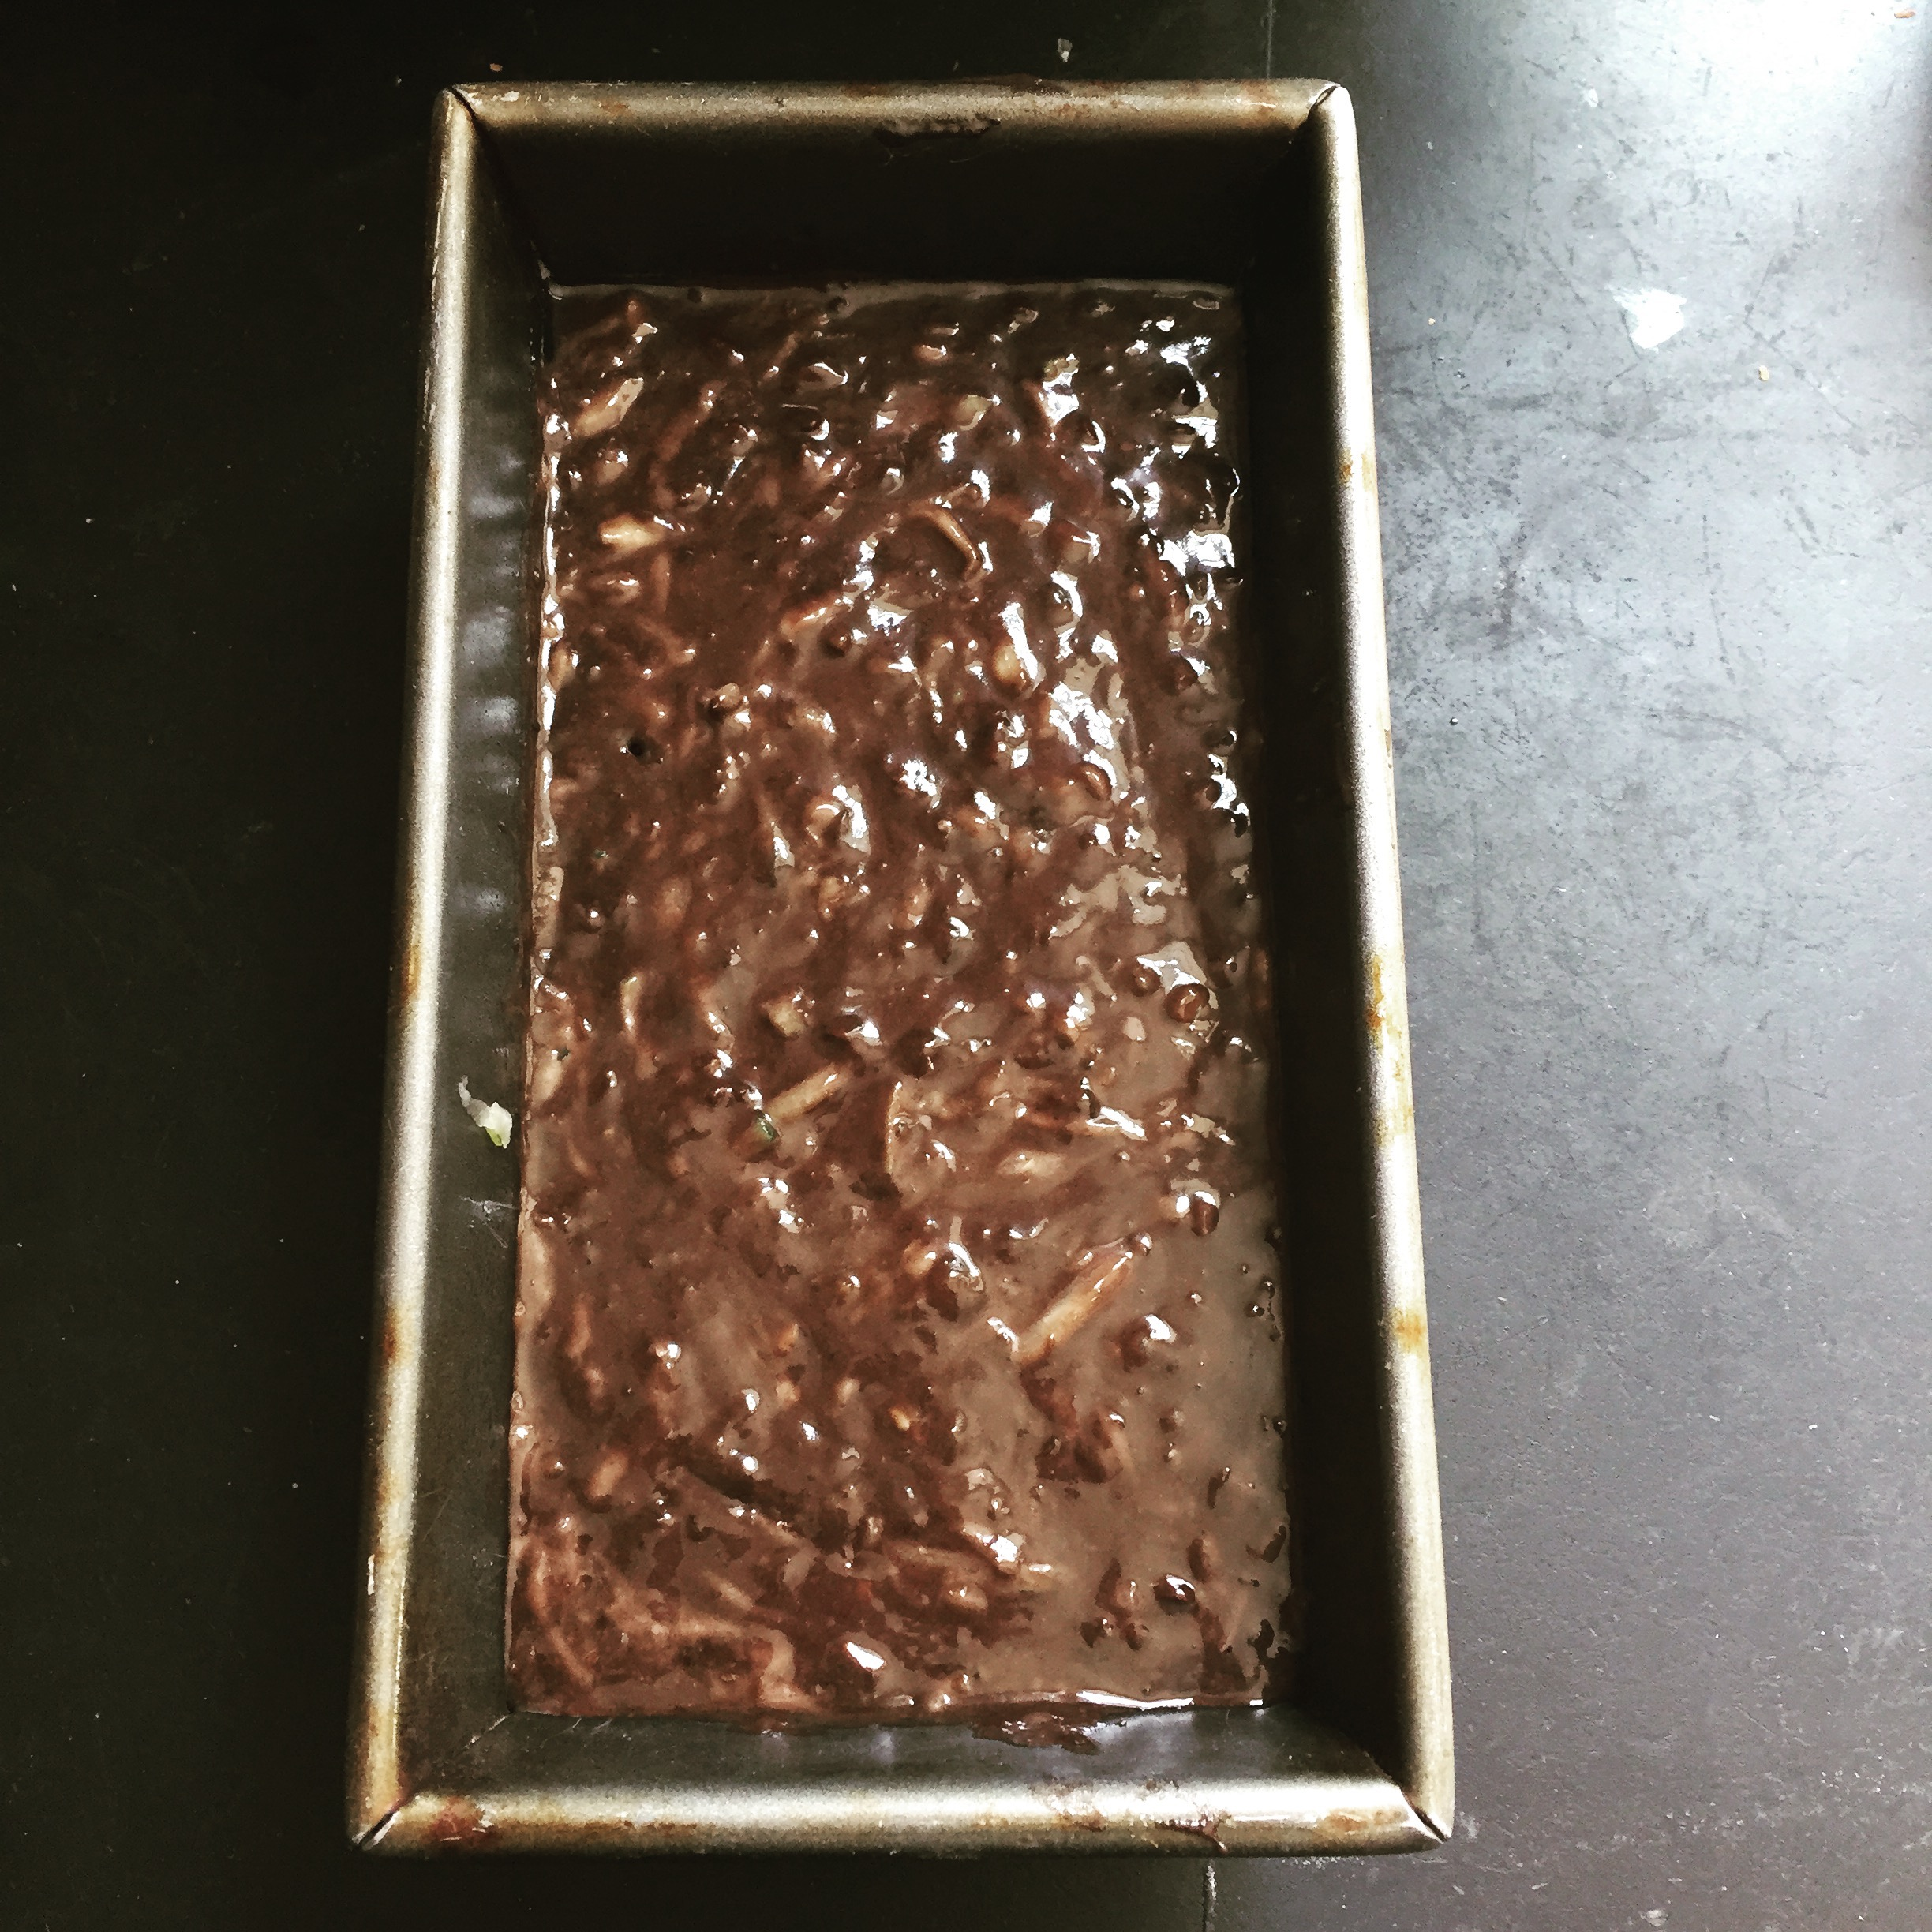 Chocolate zucchini bread: Ready to rock!